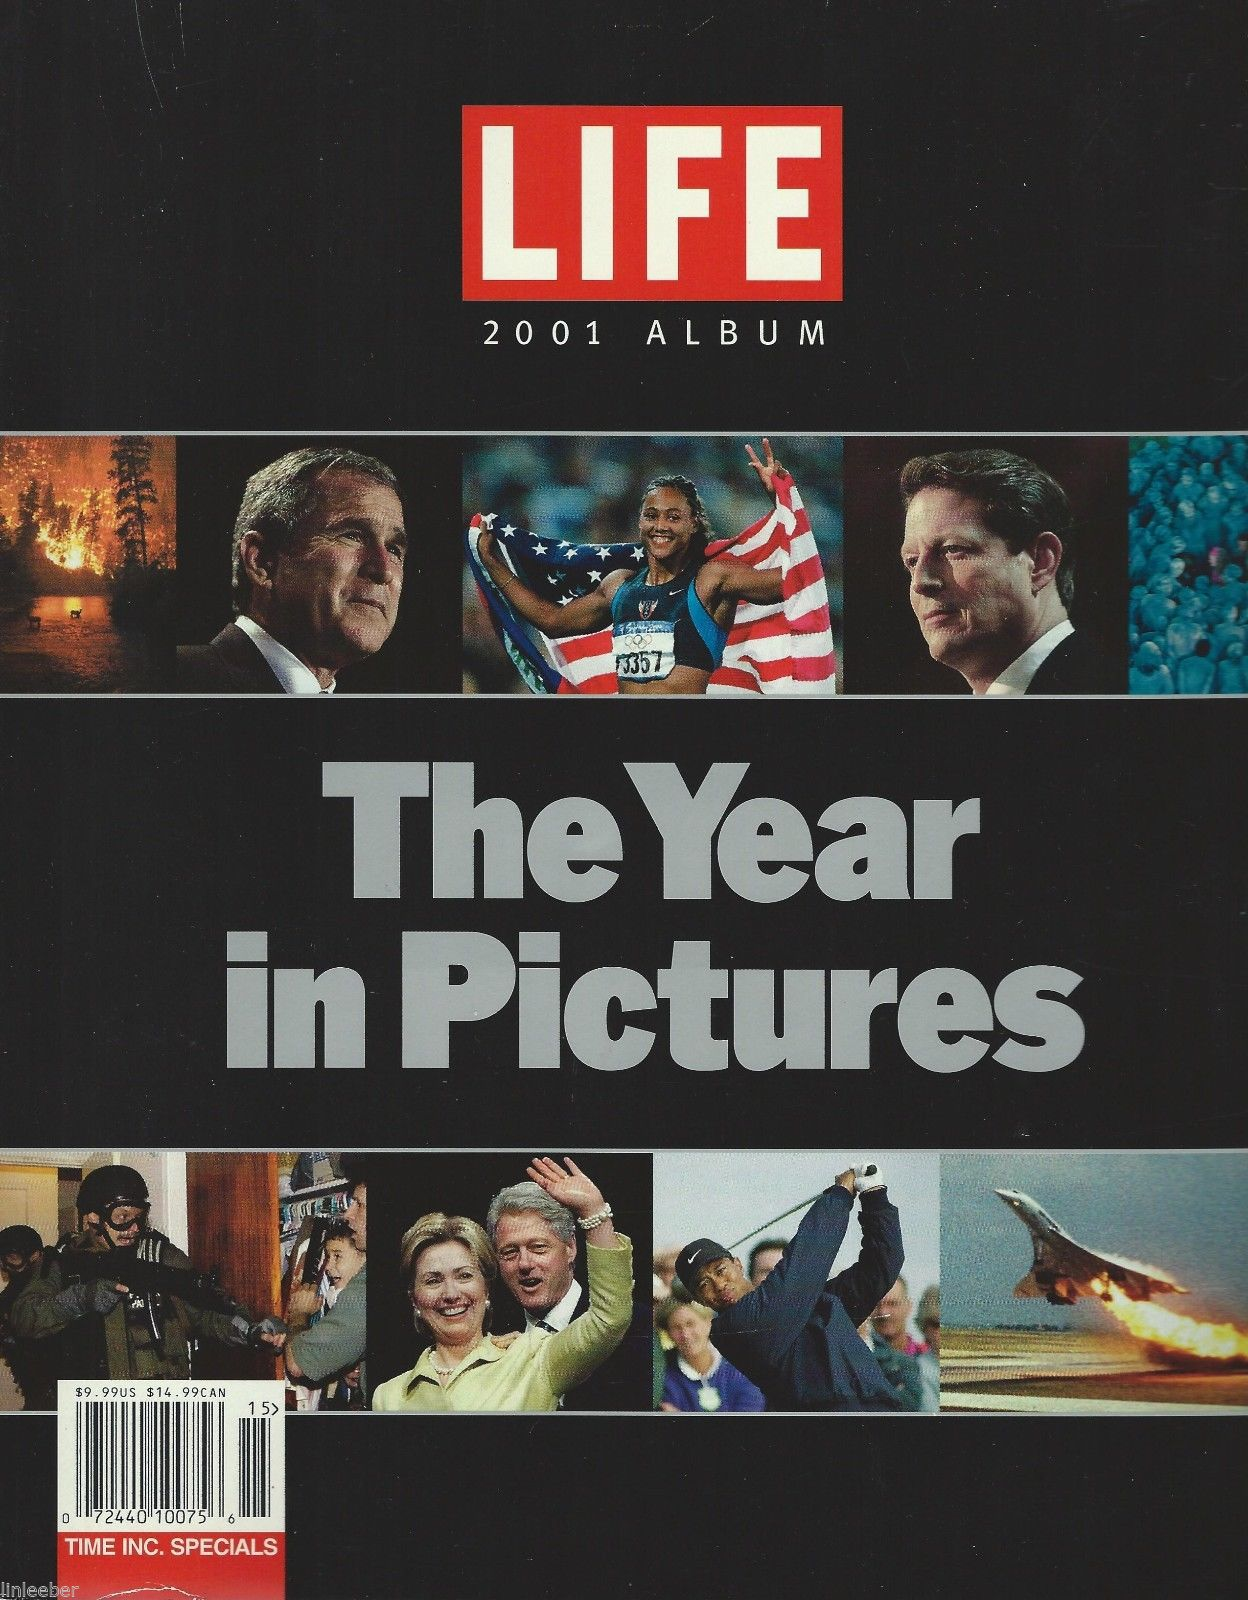 LIFE The Year in Pictures 2001 Album by The Editors of Life;1st ed.;150 photos